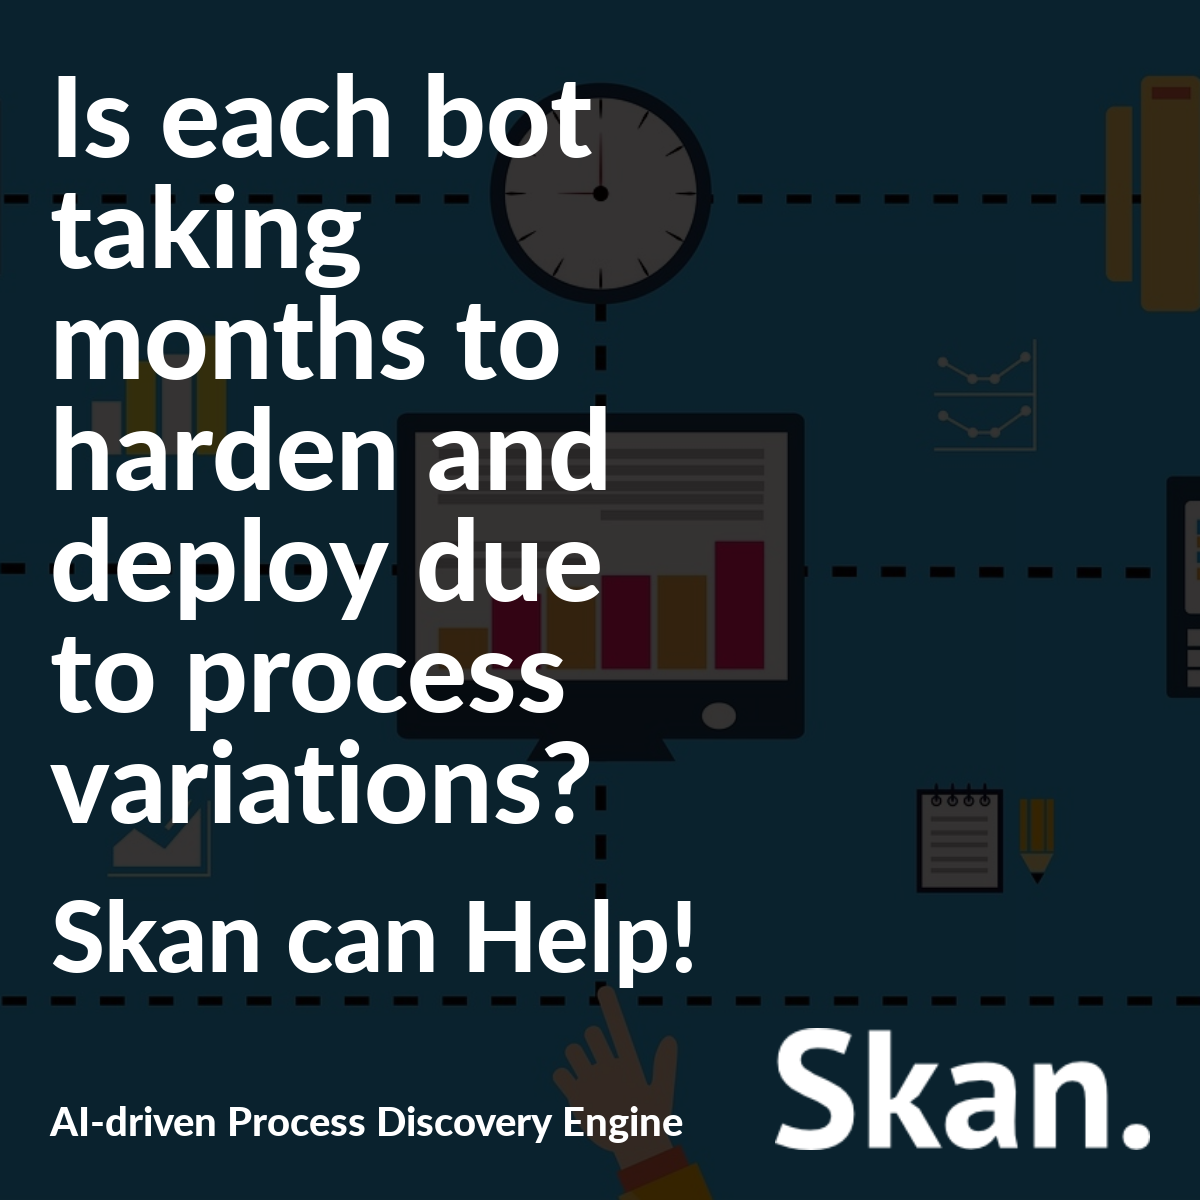 Cognitive Process Mining Software Platform for process discovery